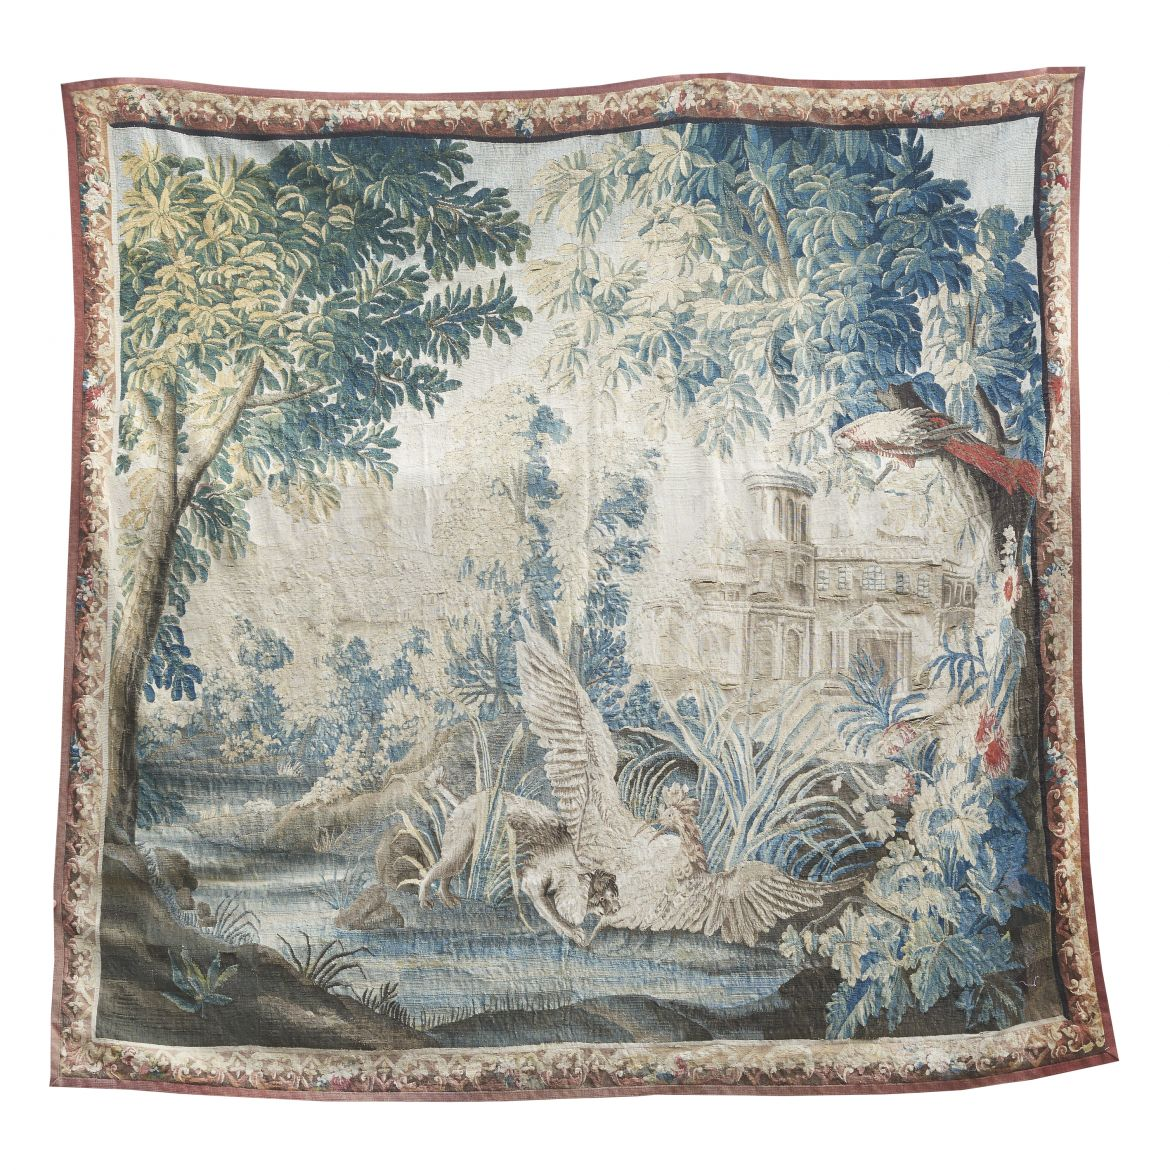 Aubusson Tapestry of Birds And A Dog By A Lake After Drawings By Jean Baptiste Oudry